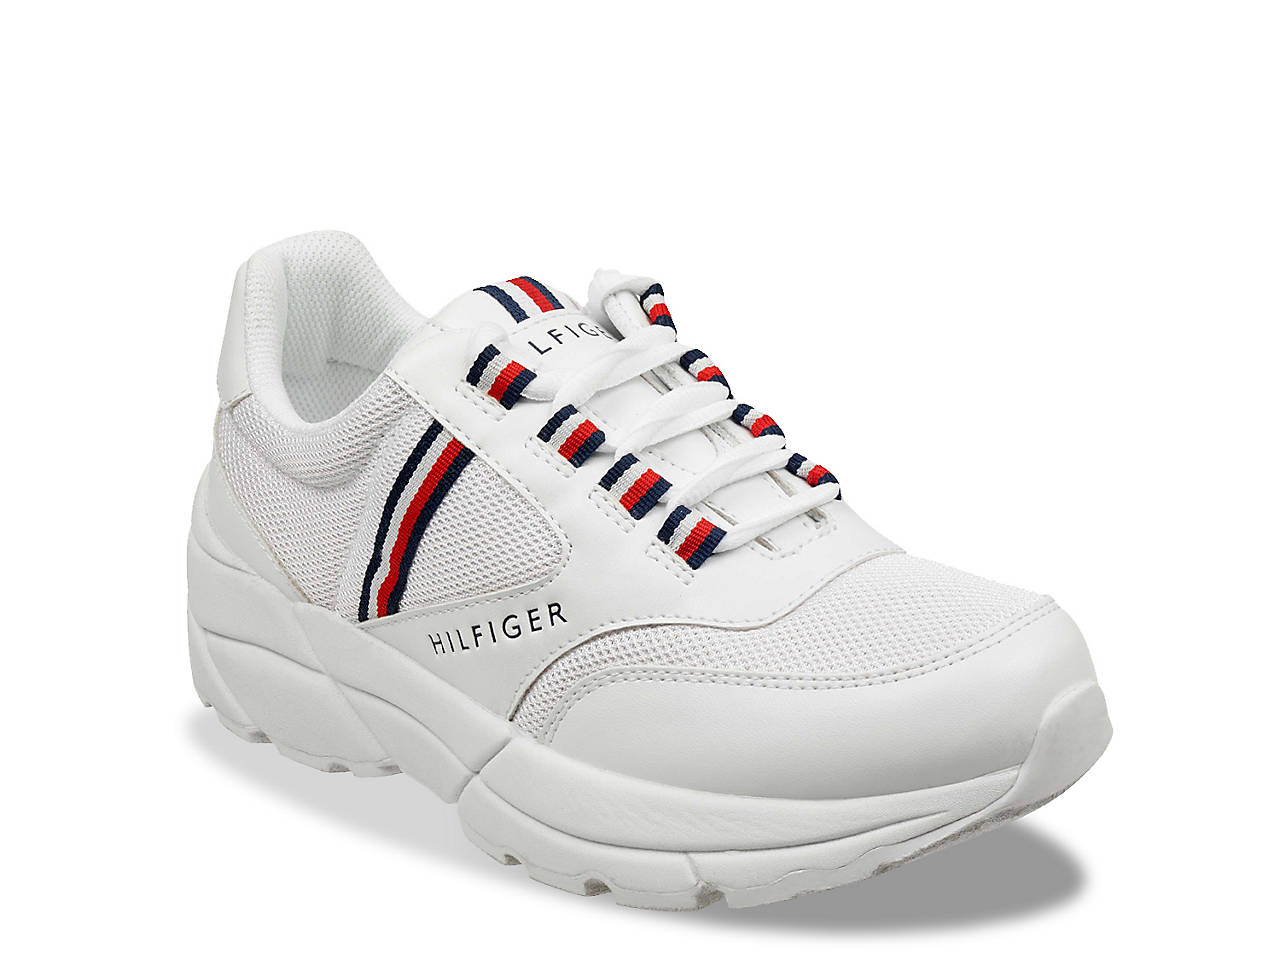 48a37f02a Tommy Hilfiger Ernie Sneaker Women s Shoes